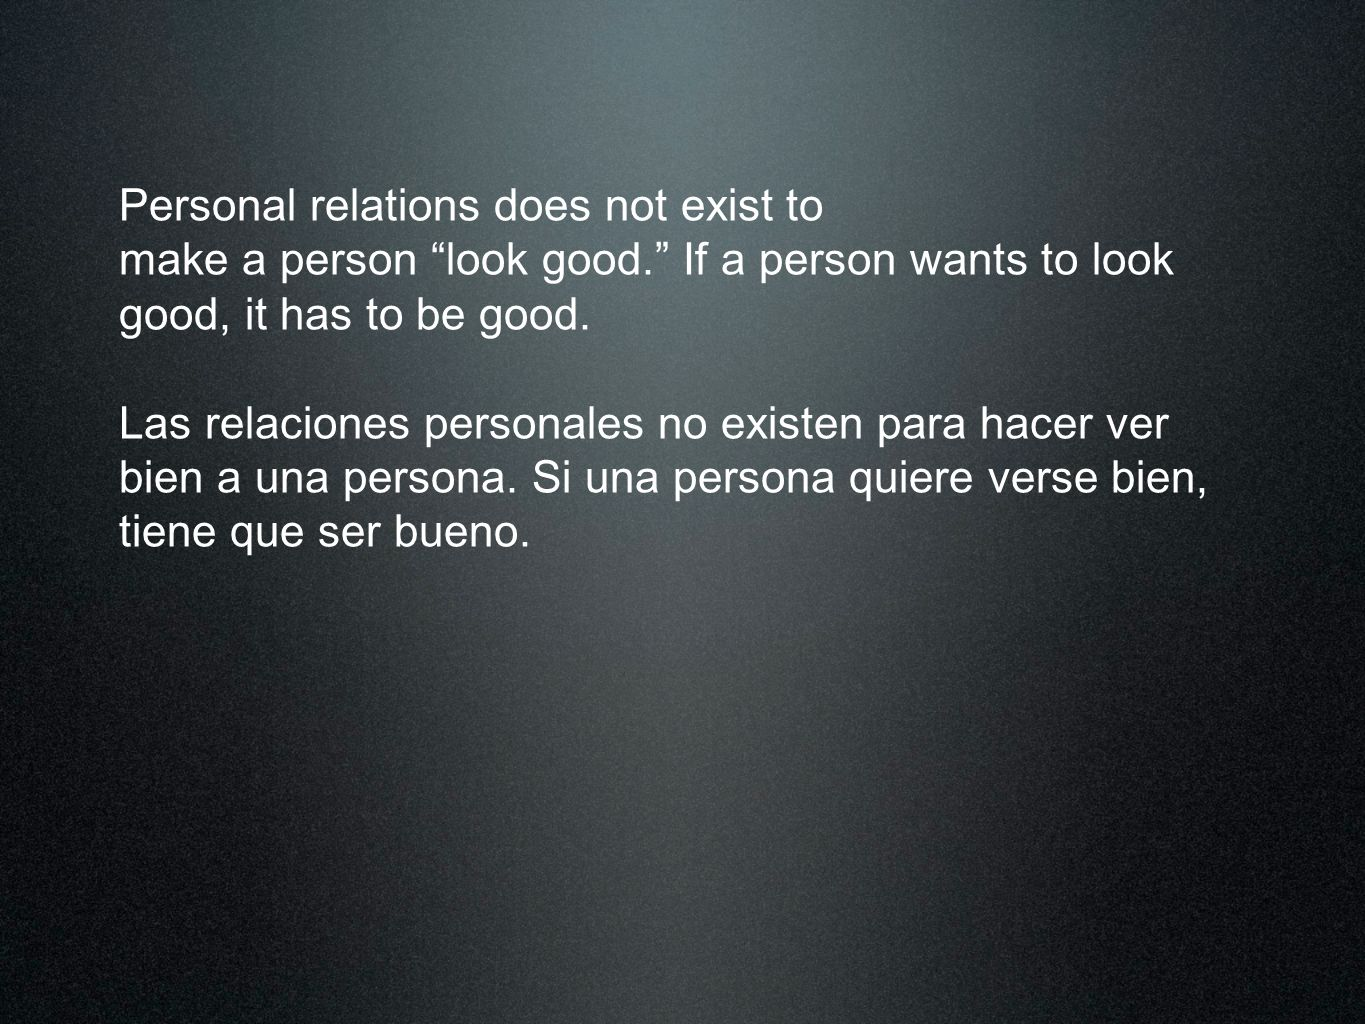 Personal relations does not exist to make a person look good. If a person wants to look good, it has to be good. Las relaciones personales no existen